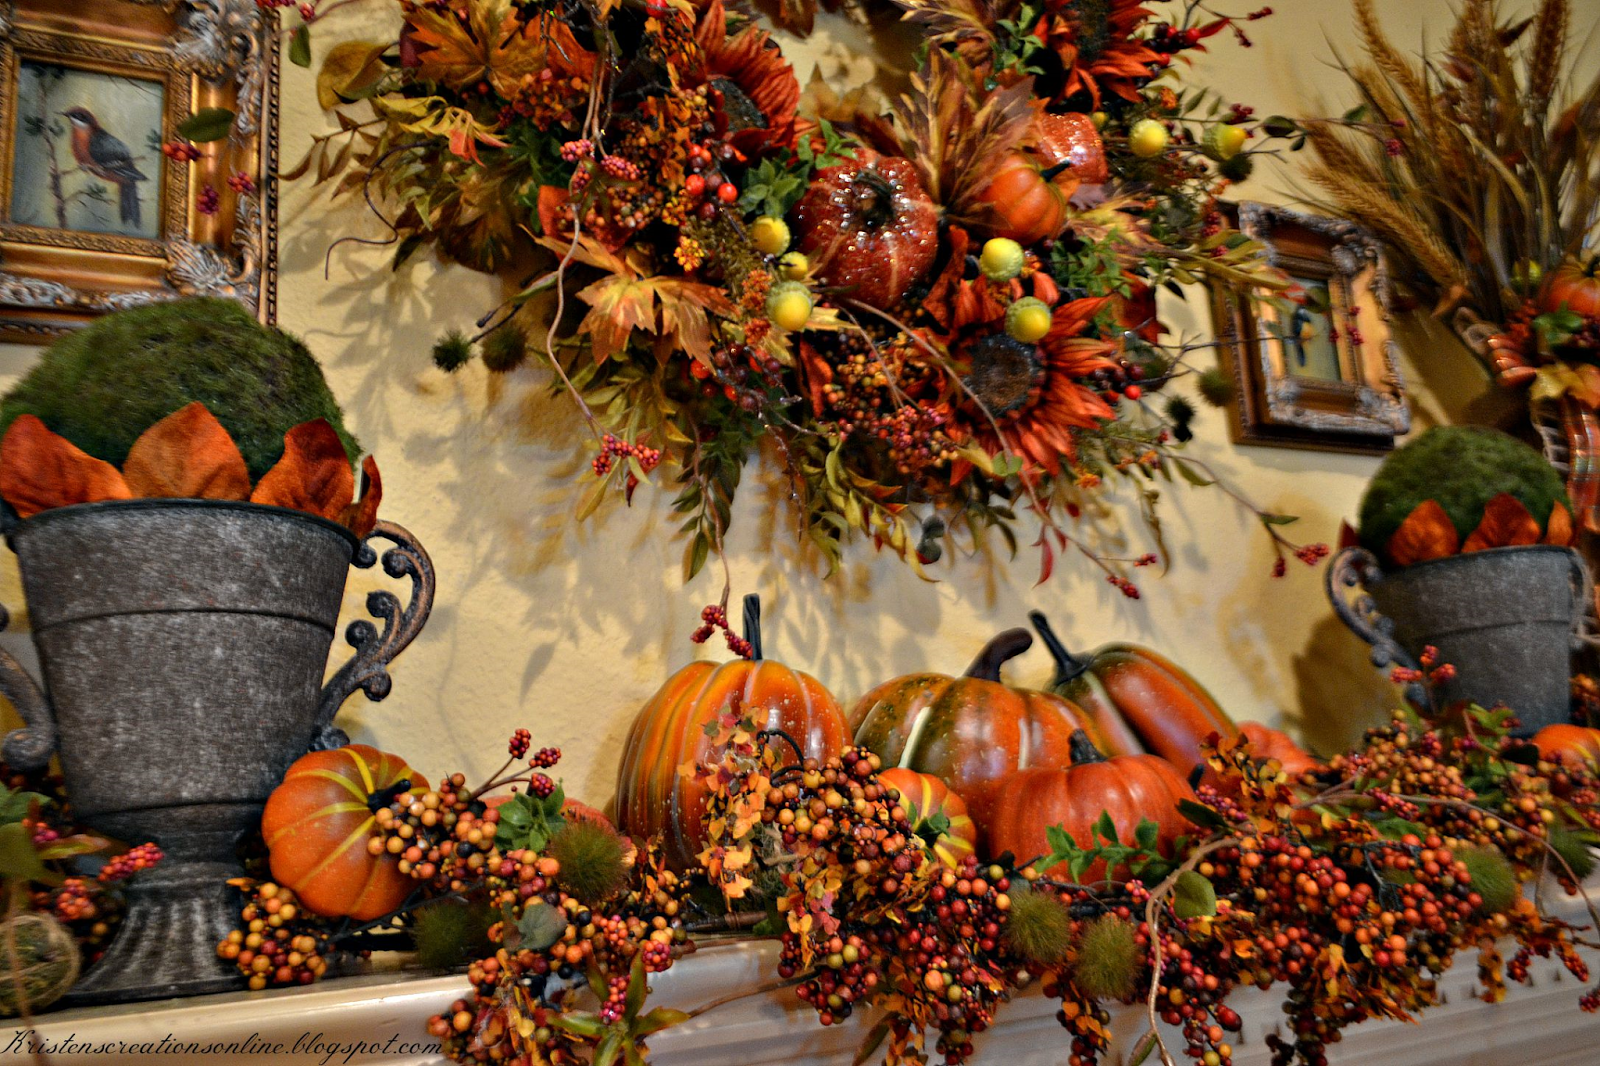 Kristen S Creations Fall Mantel 2015